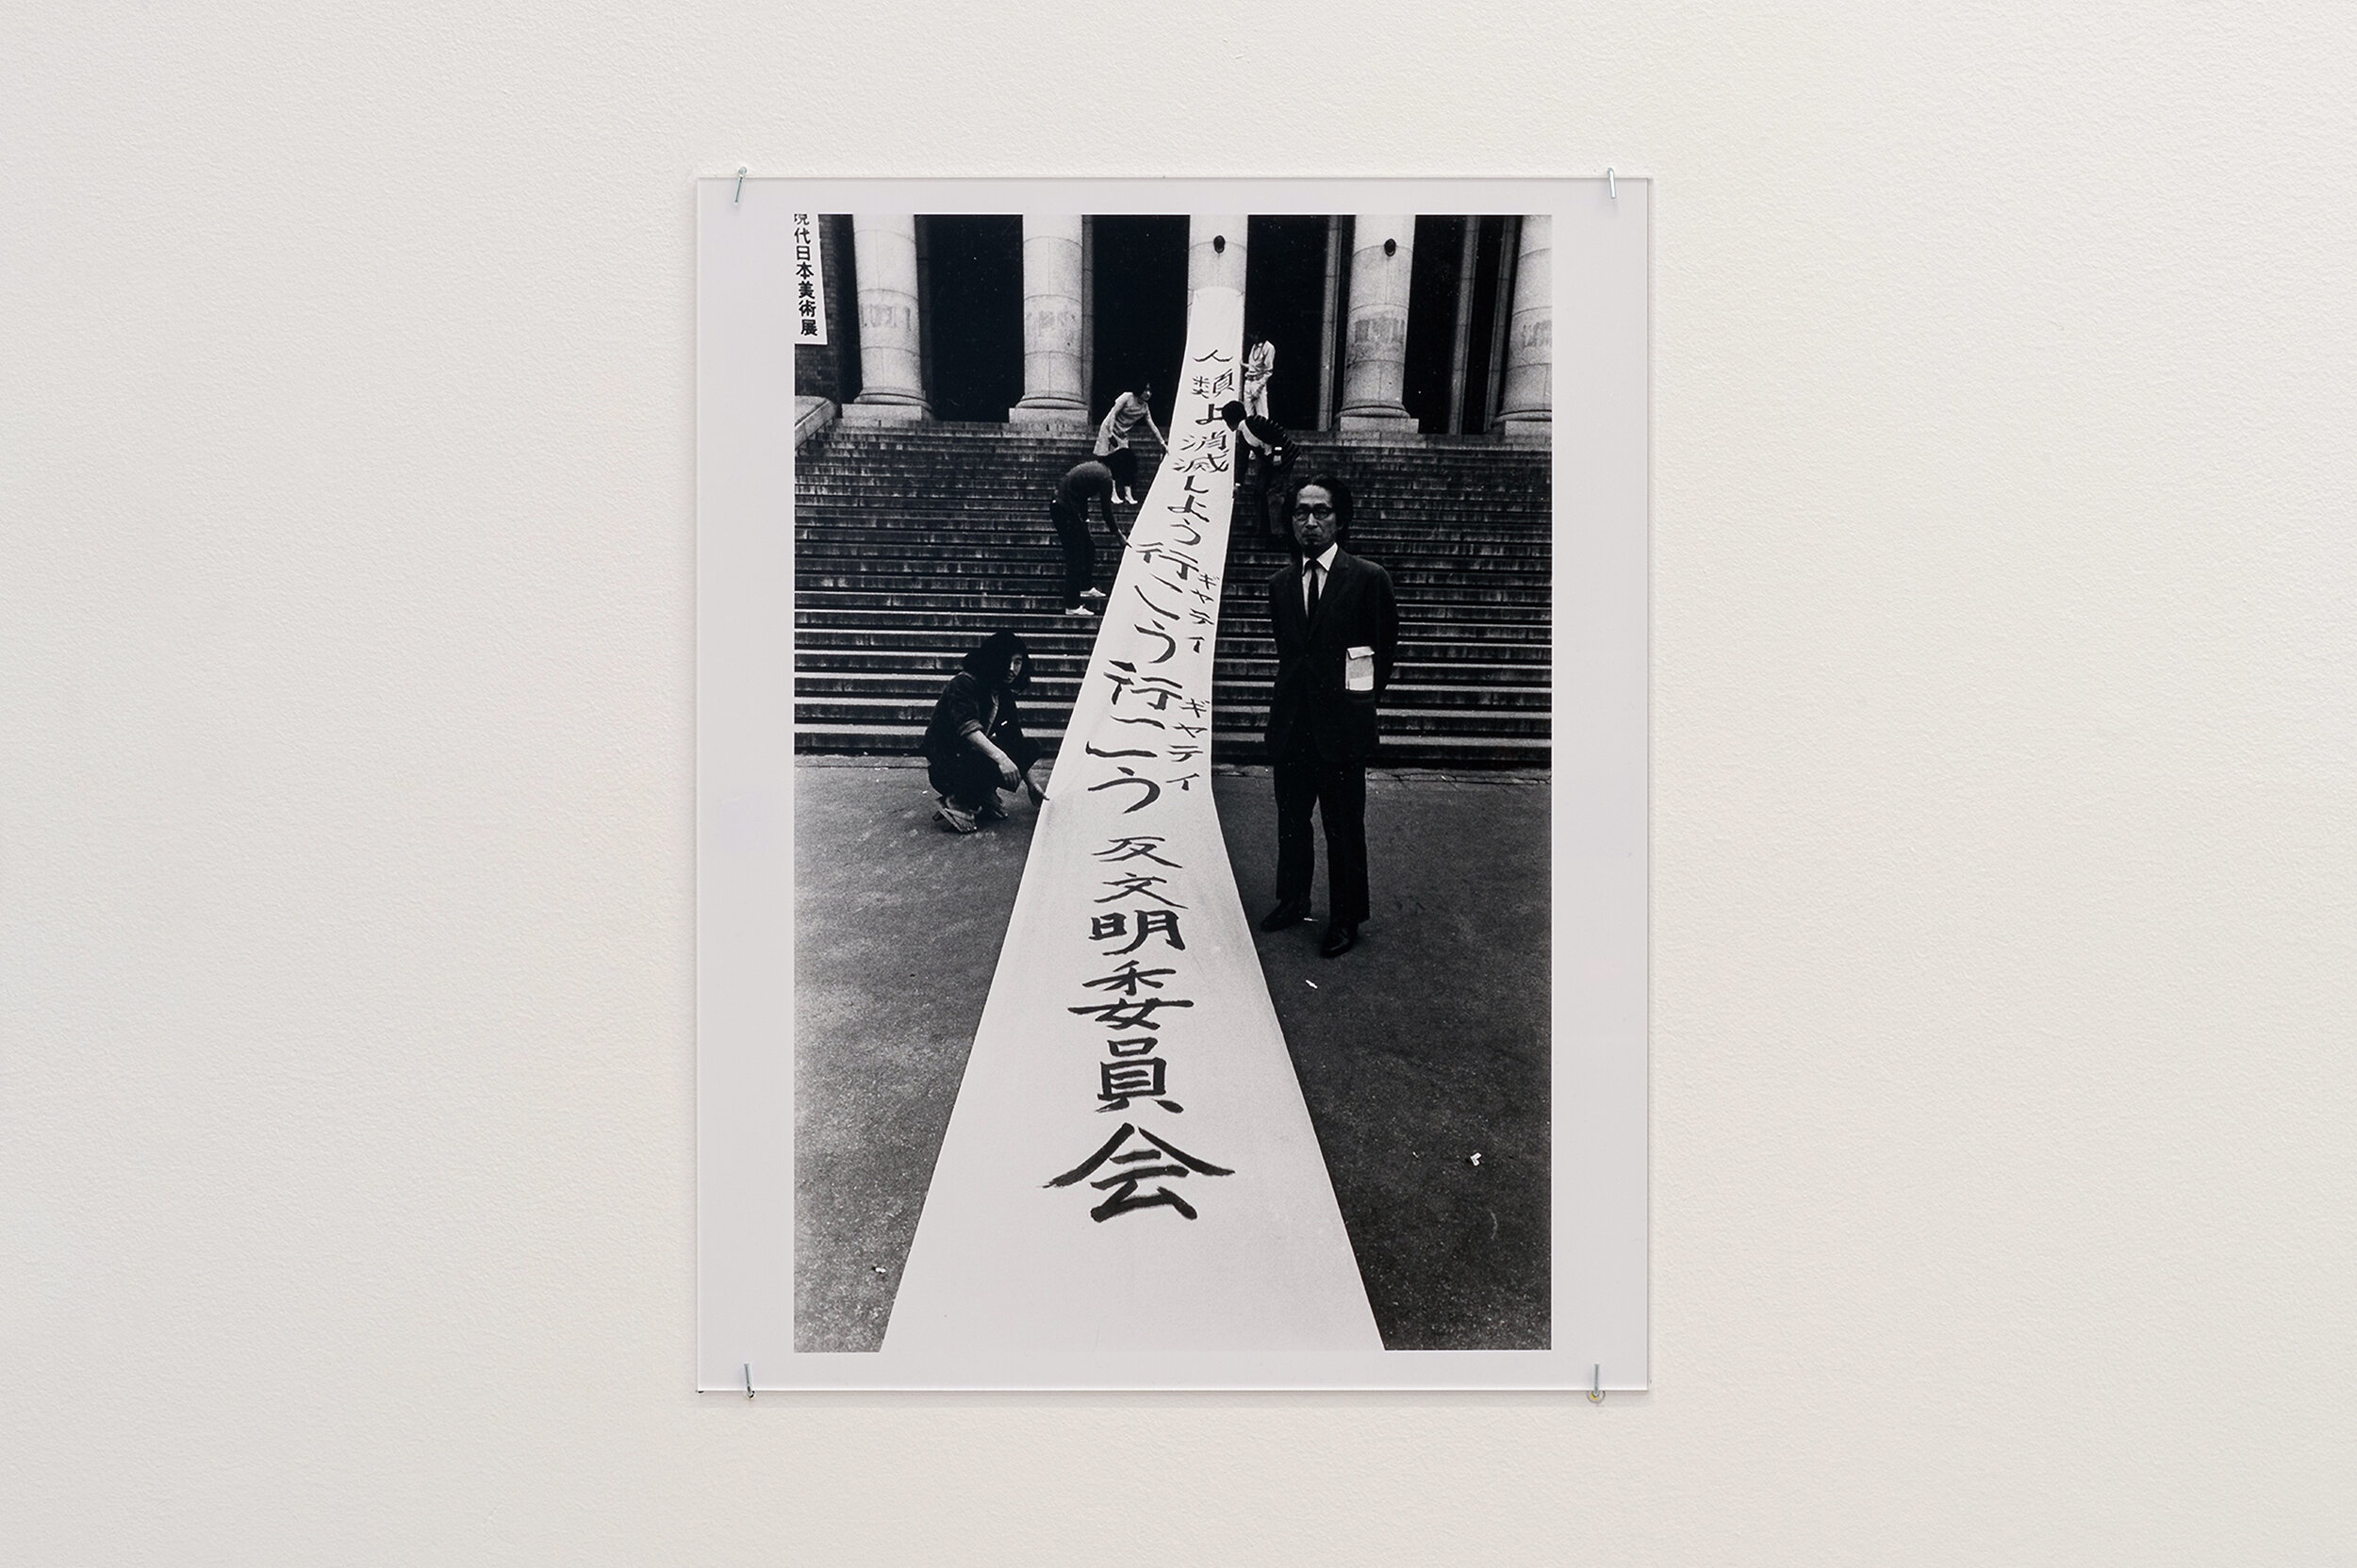 The 10th Contemporary Japanese Art Exhibition at The Tokyo Metropolitan Art Museum, 1971